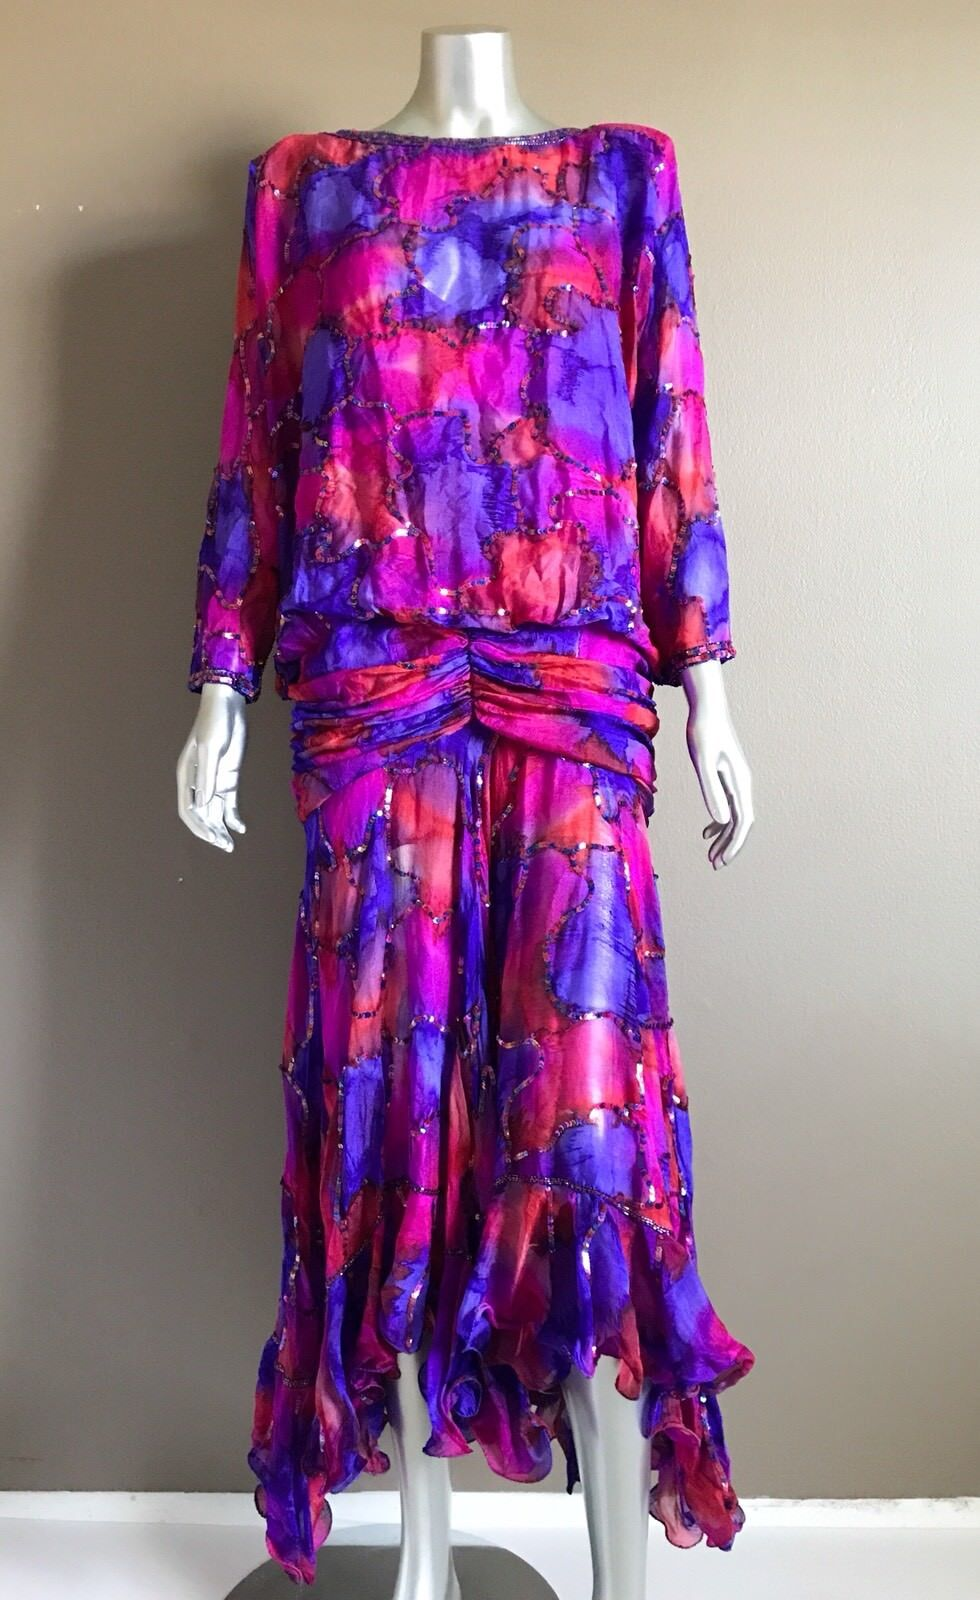 Vintage Judith Ann Creations True 80's Beaded 100% Silk Multi-color Dress Size M